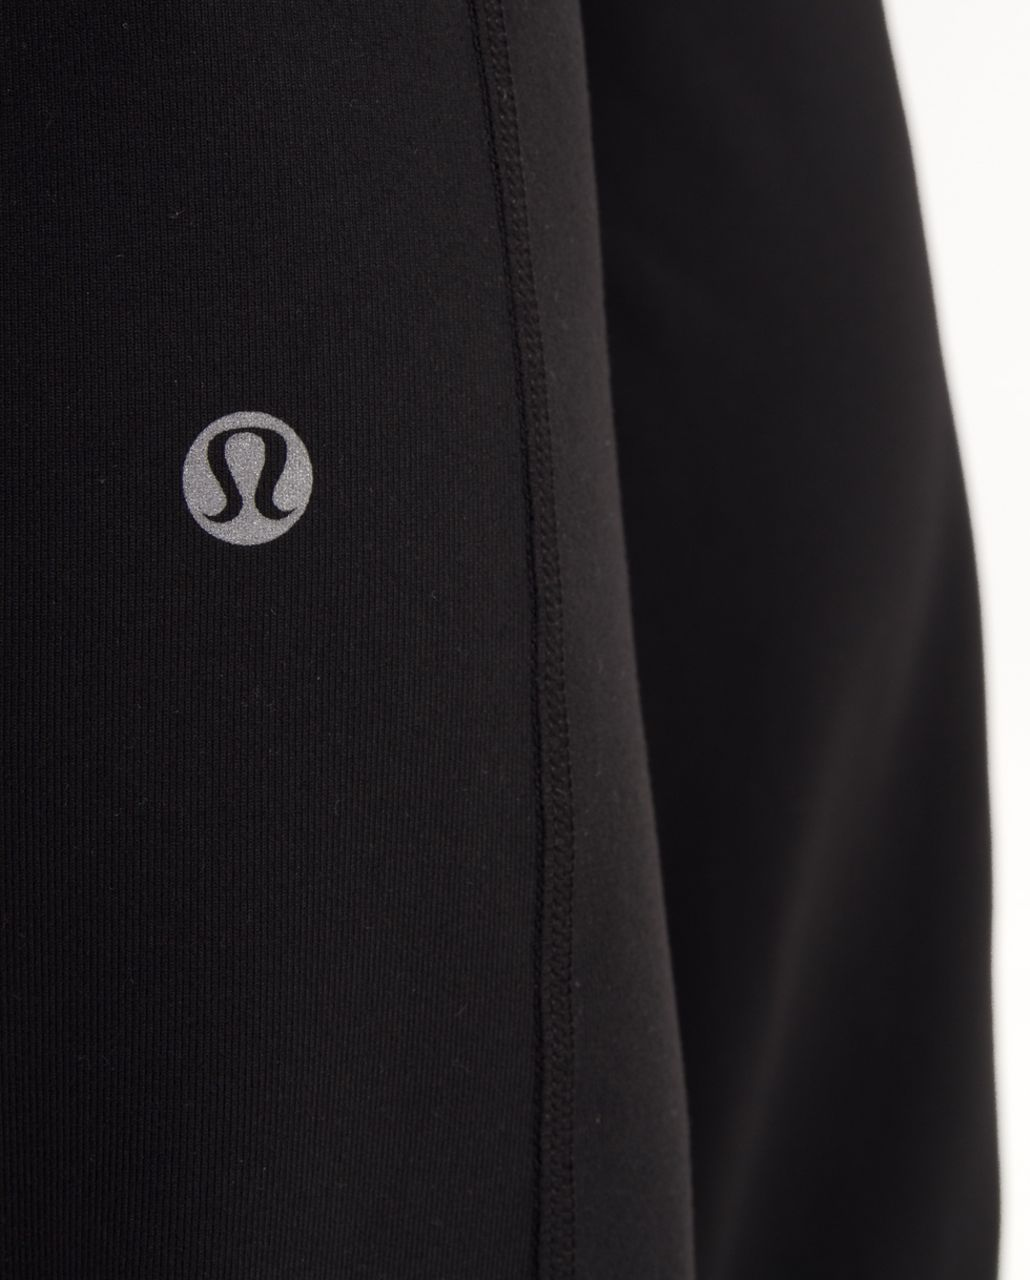 Lululemon Still Pant *Brushed (Regular) - Black